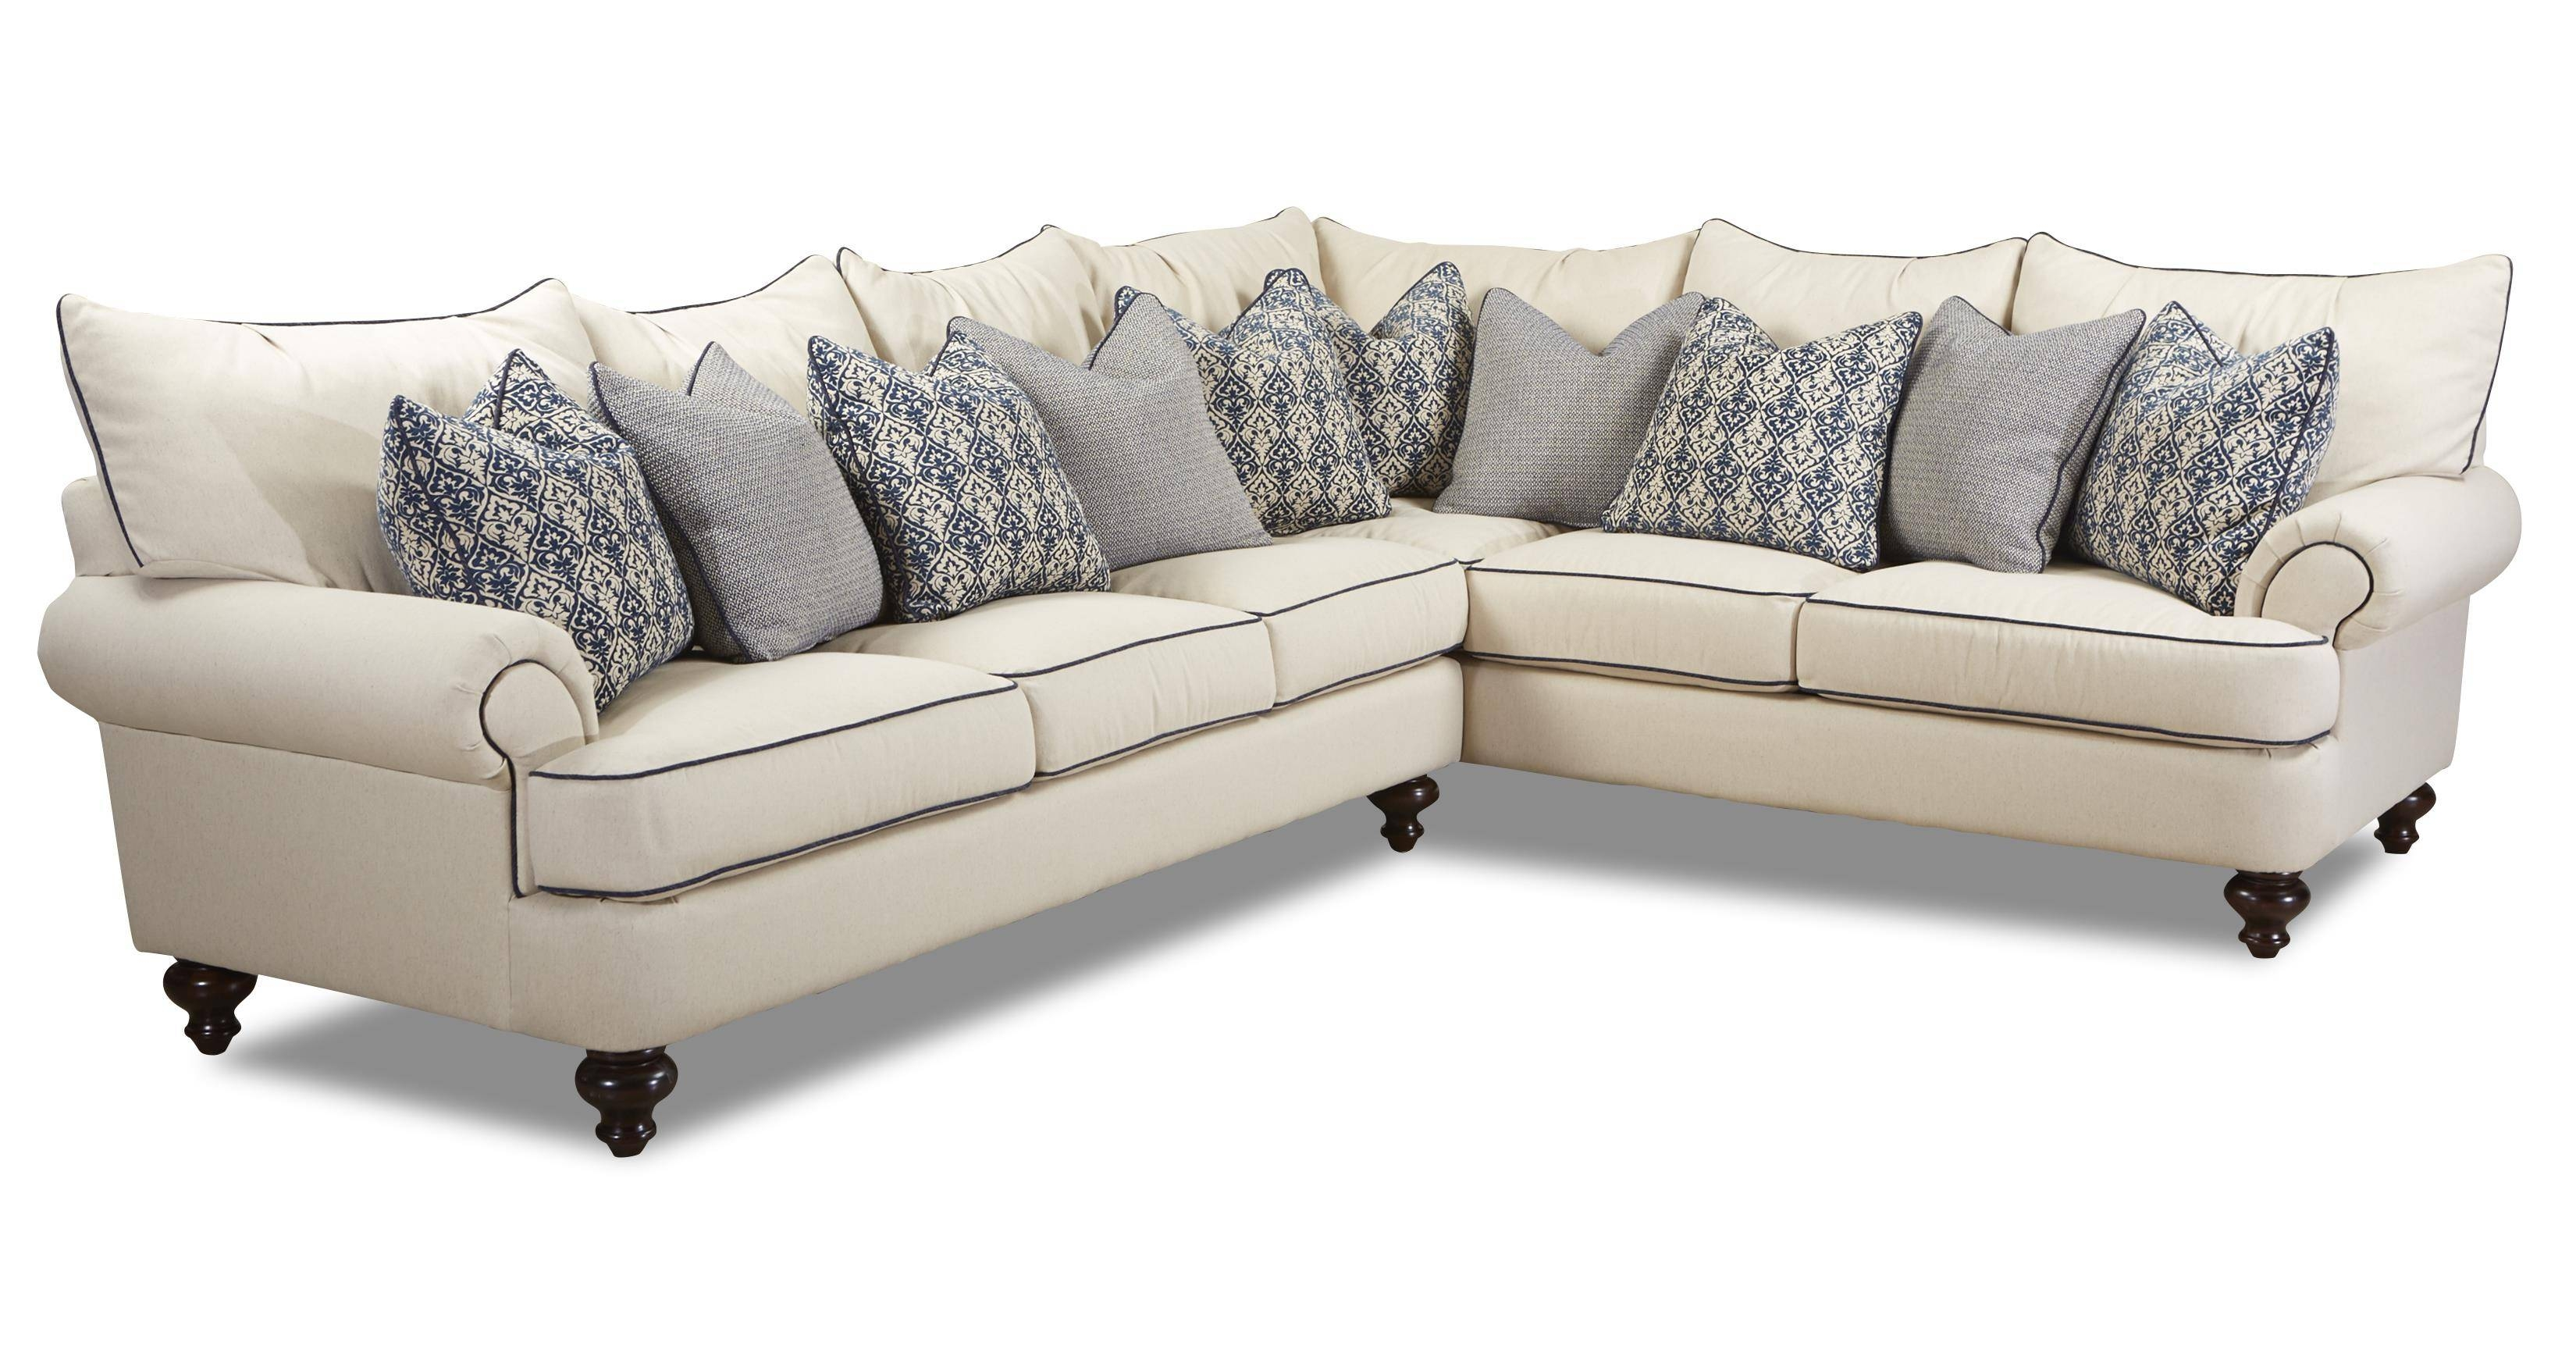 Shabby Chic Sectional Sofaklaussner | Wolf And Gardiner Wolf Within Shabby Chic Sectional Sofas (View 11 of 15)